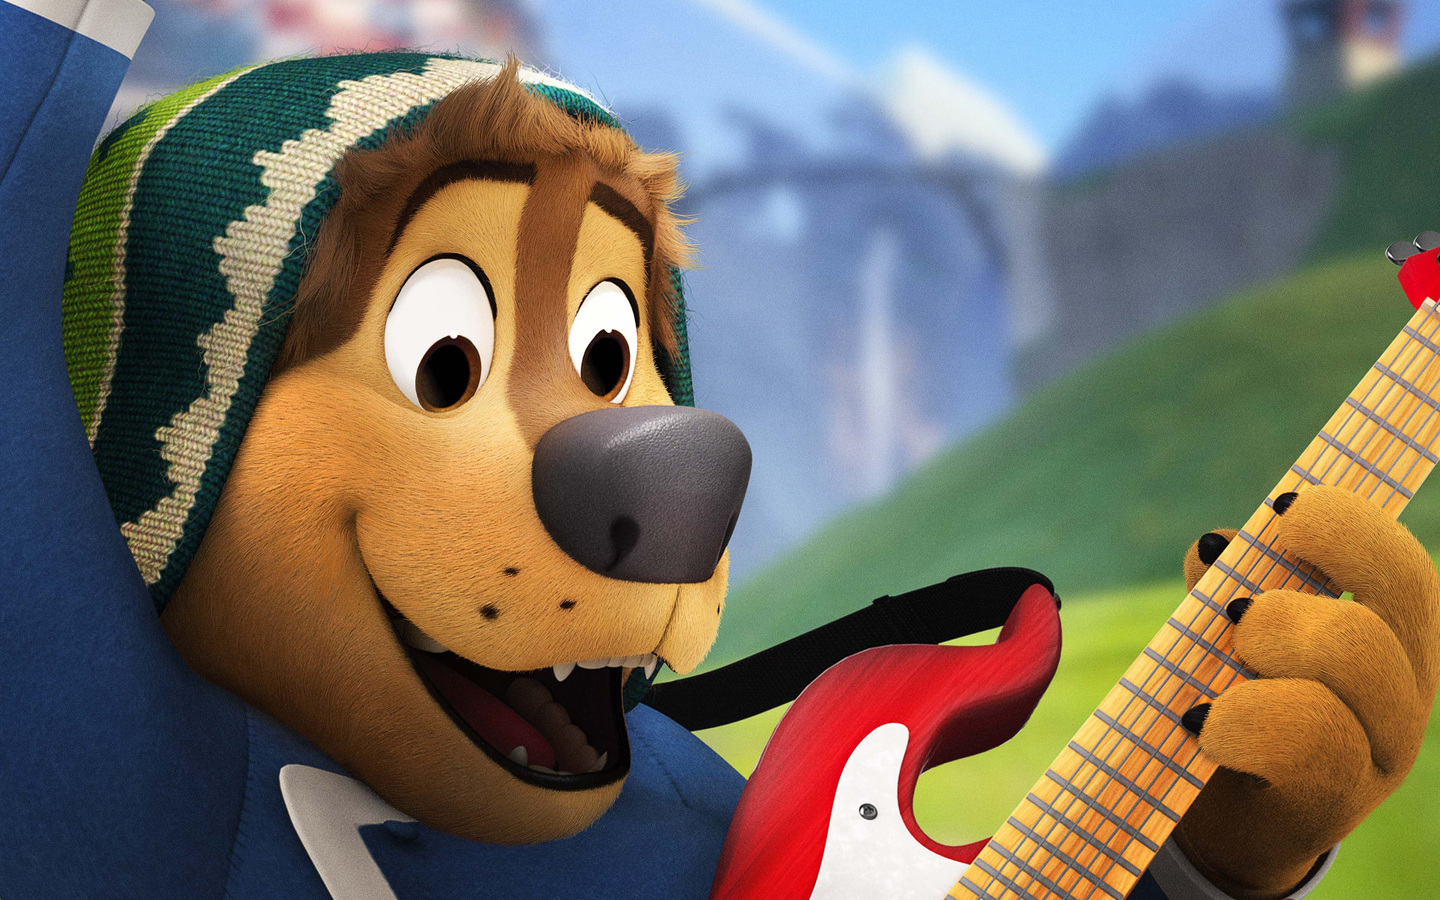 1440x900 Rock Dog Movie 1440x900 Resolution HD 4k Wallpapers, Images